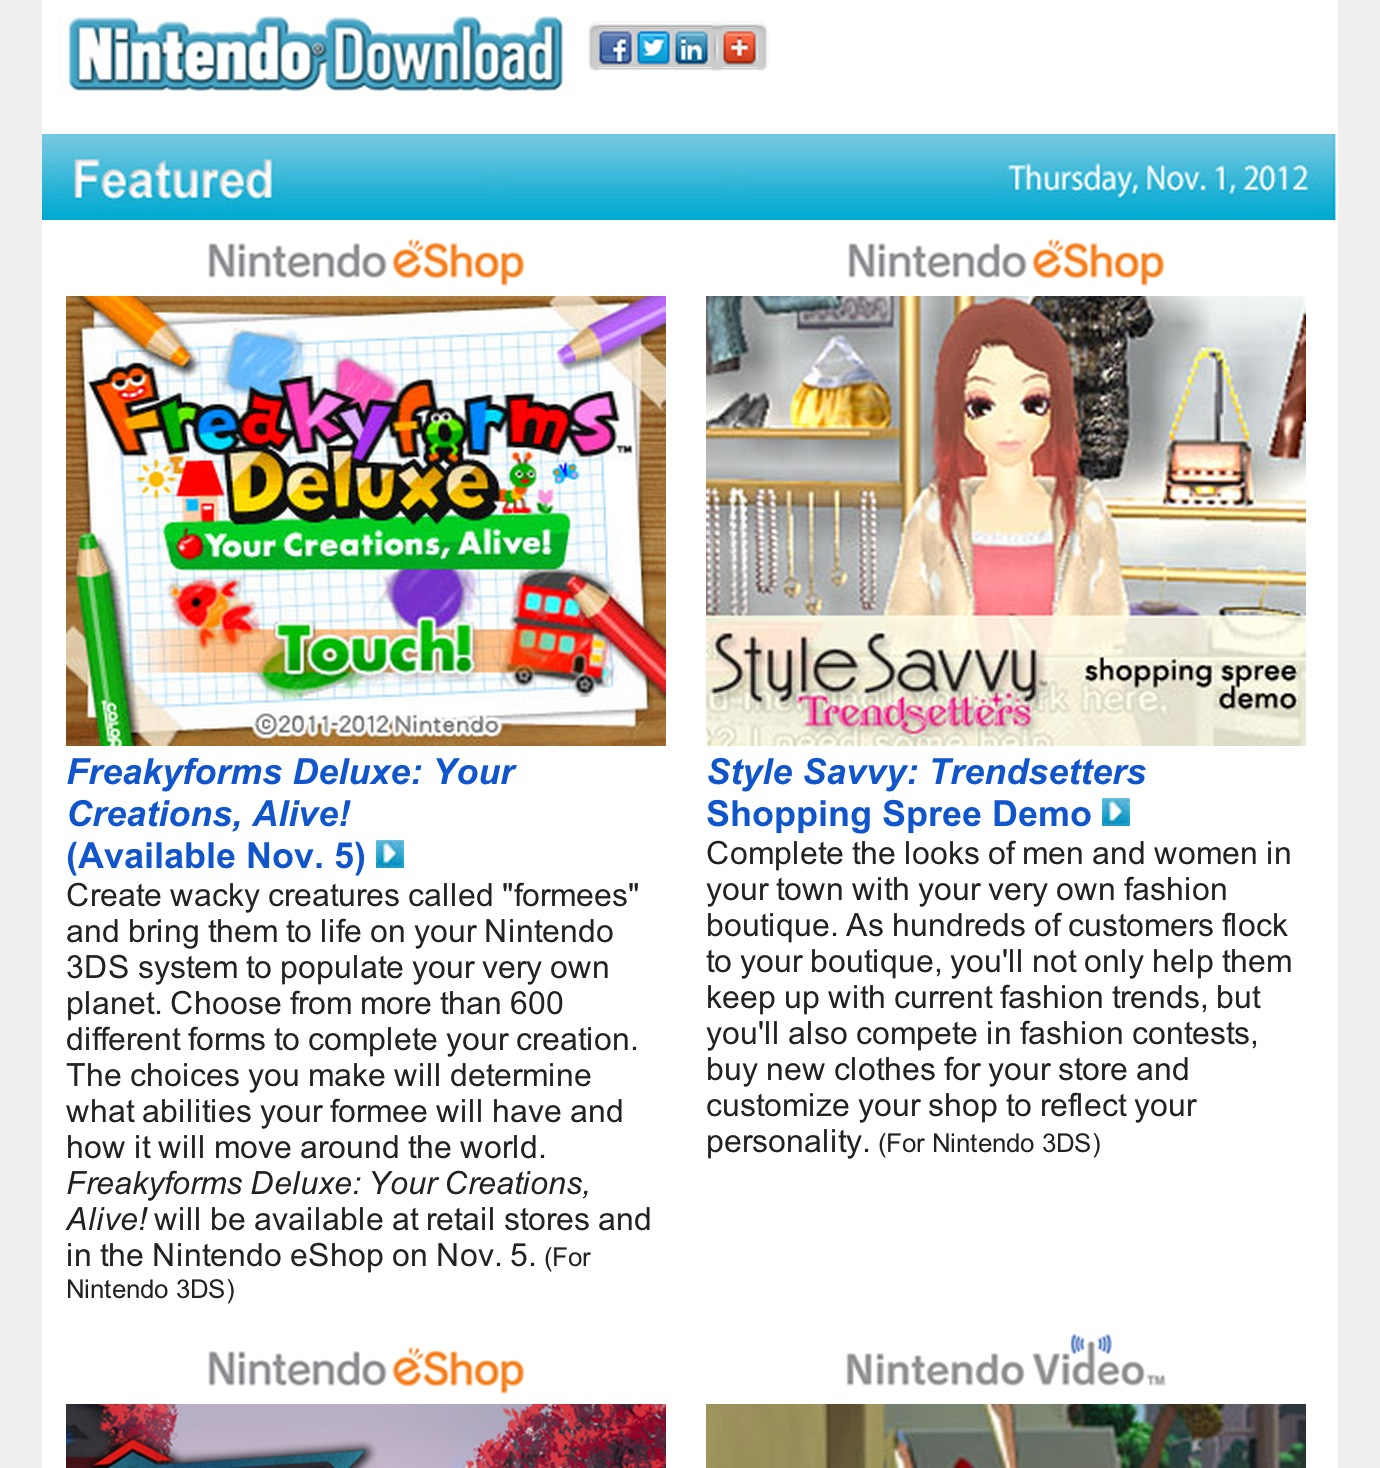 Nintendo Download – November 1, 2012, Freakyforms Deluxe Available Nov. 5